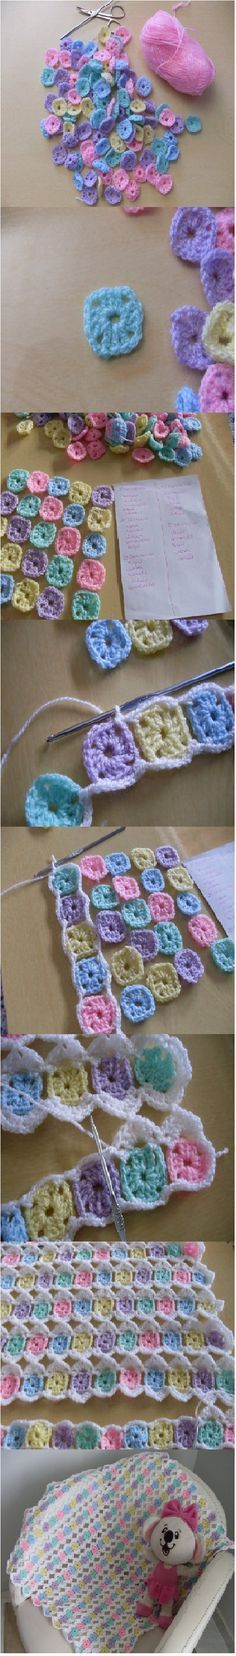 Wonder Nice Photos: The cutest way ever to end you left-over yarn : the One-Round Granny crochet blanket!